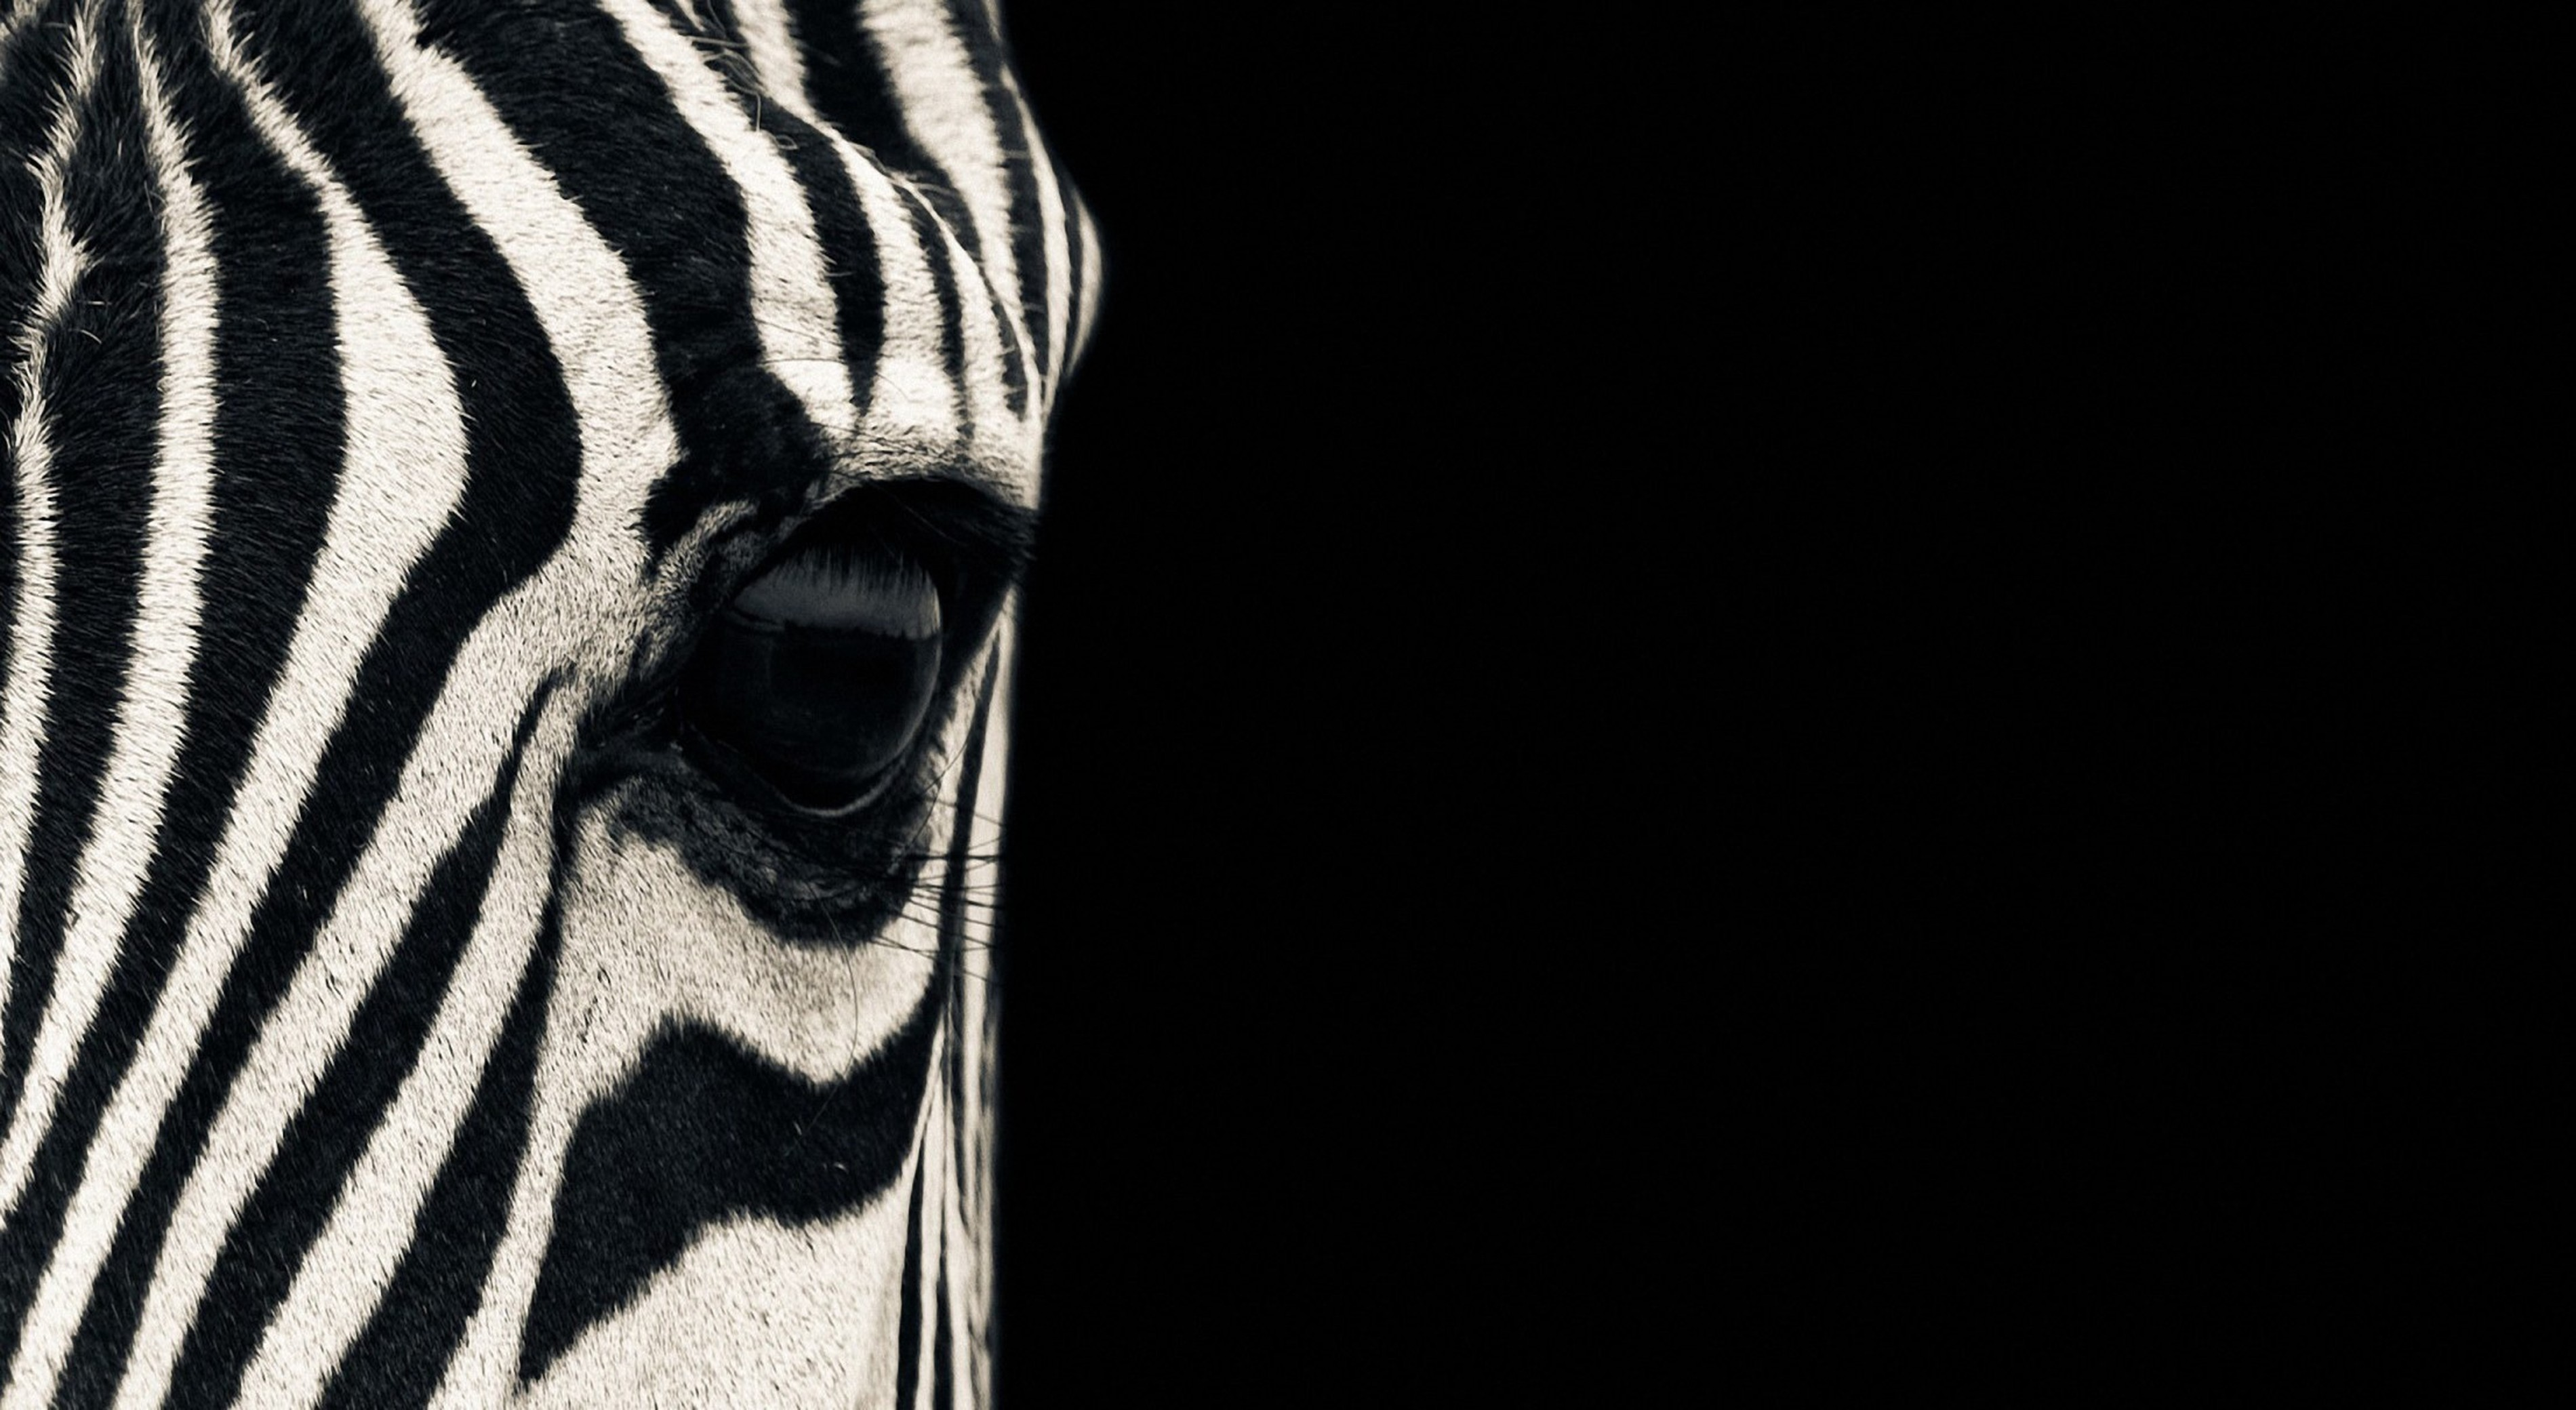 Black And White Animals Pictures